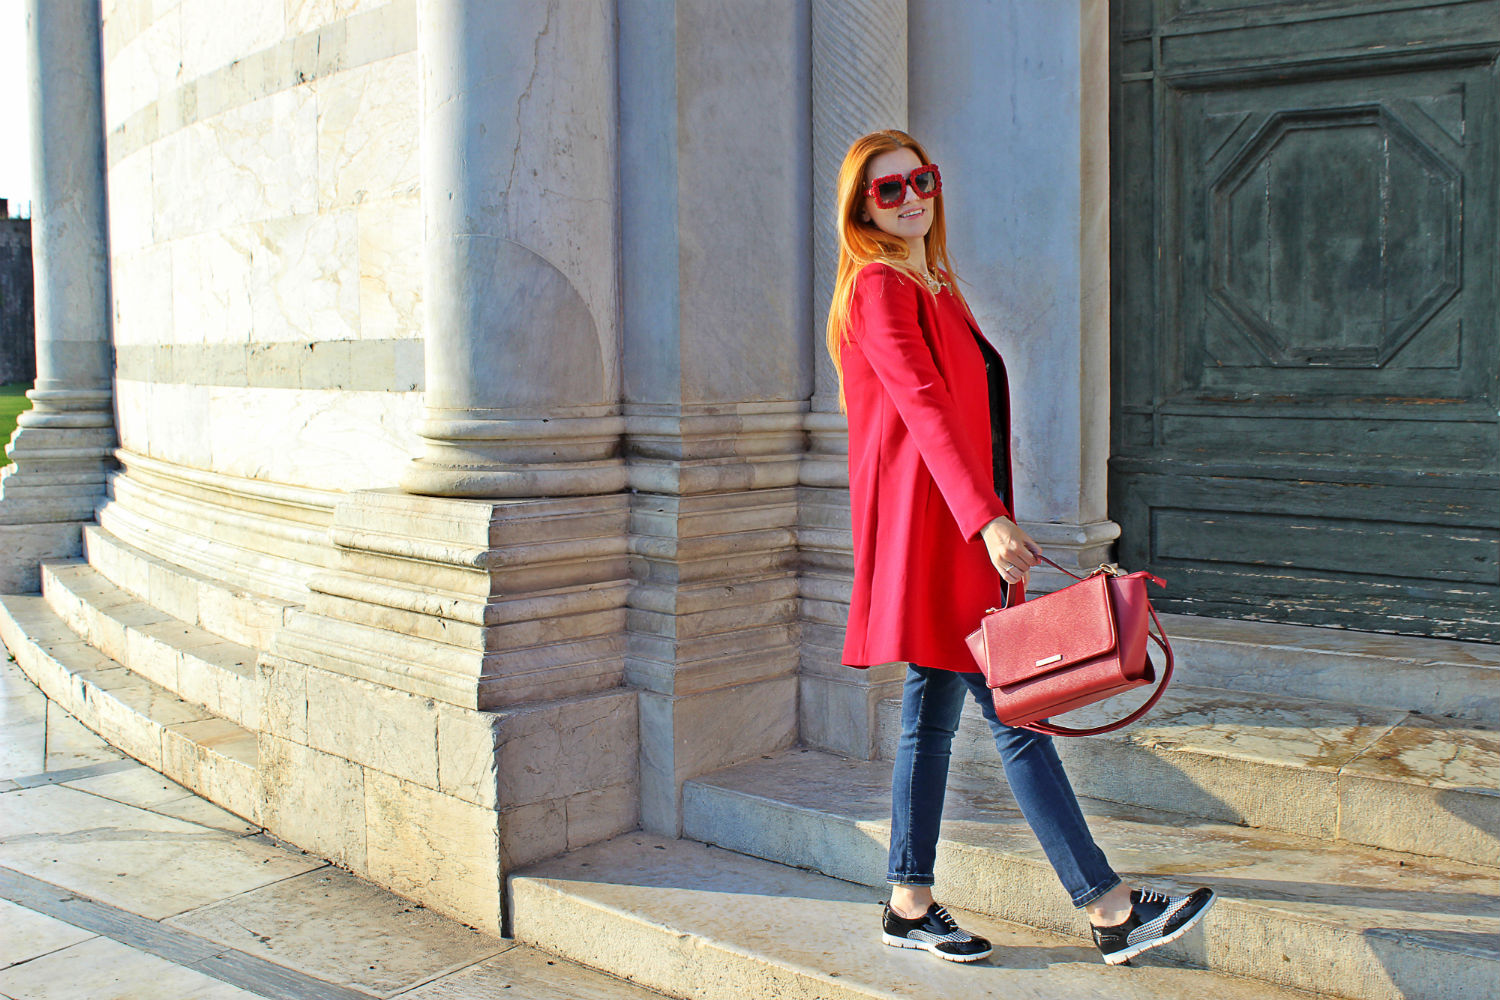 elisabetta bertolini pisa cappotto rosso ootd outfit autunno